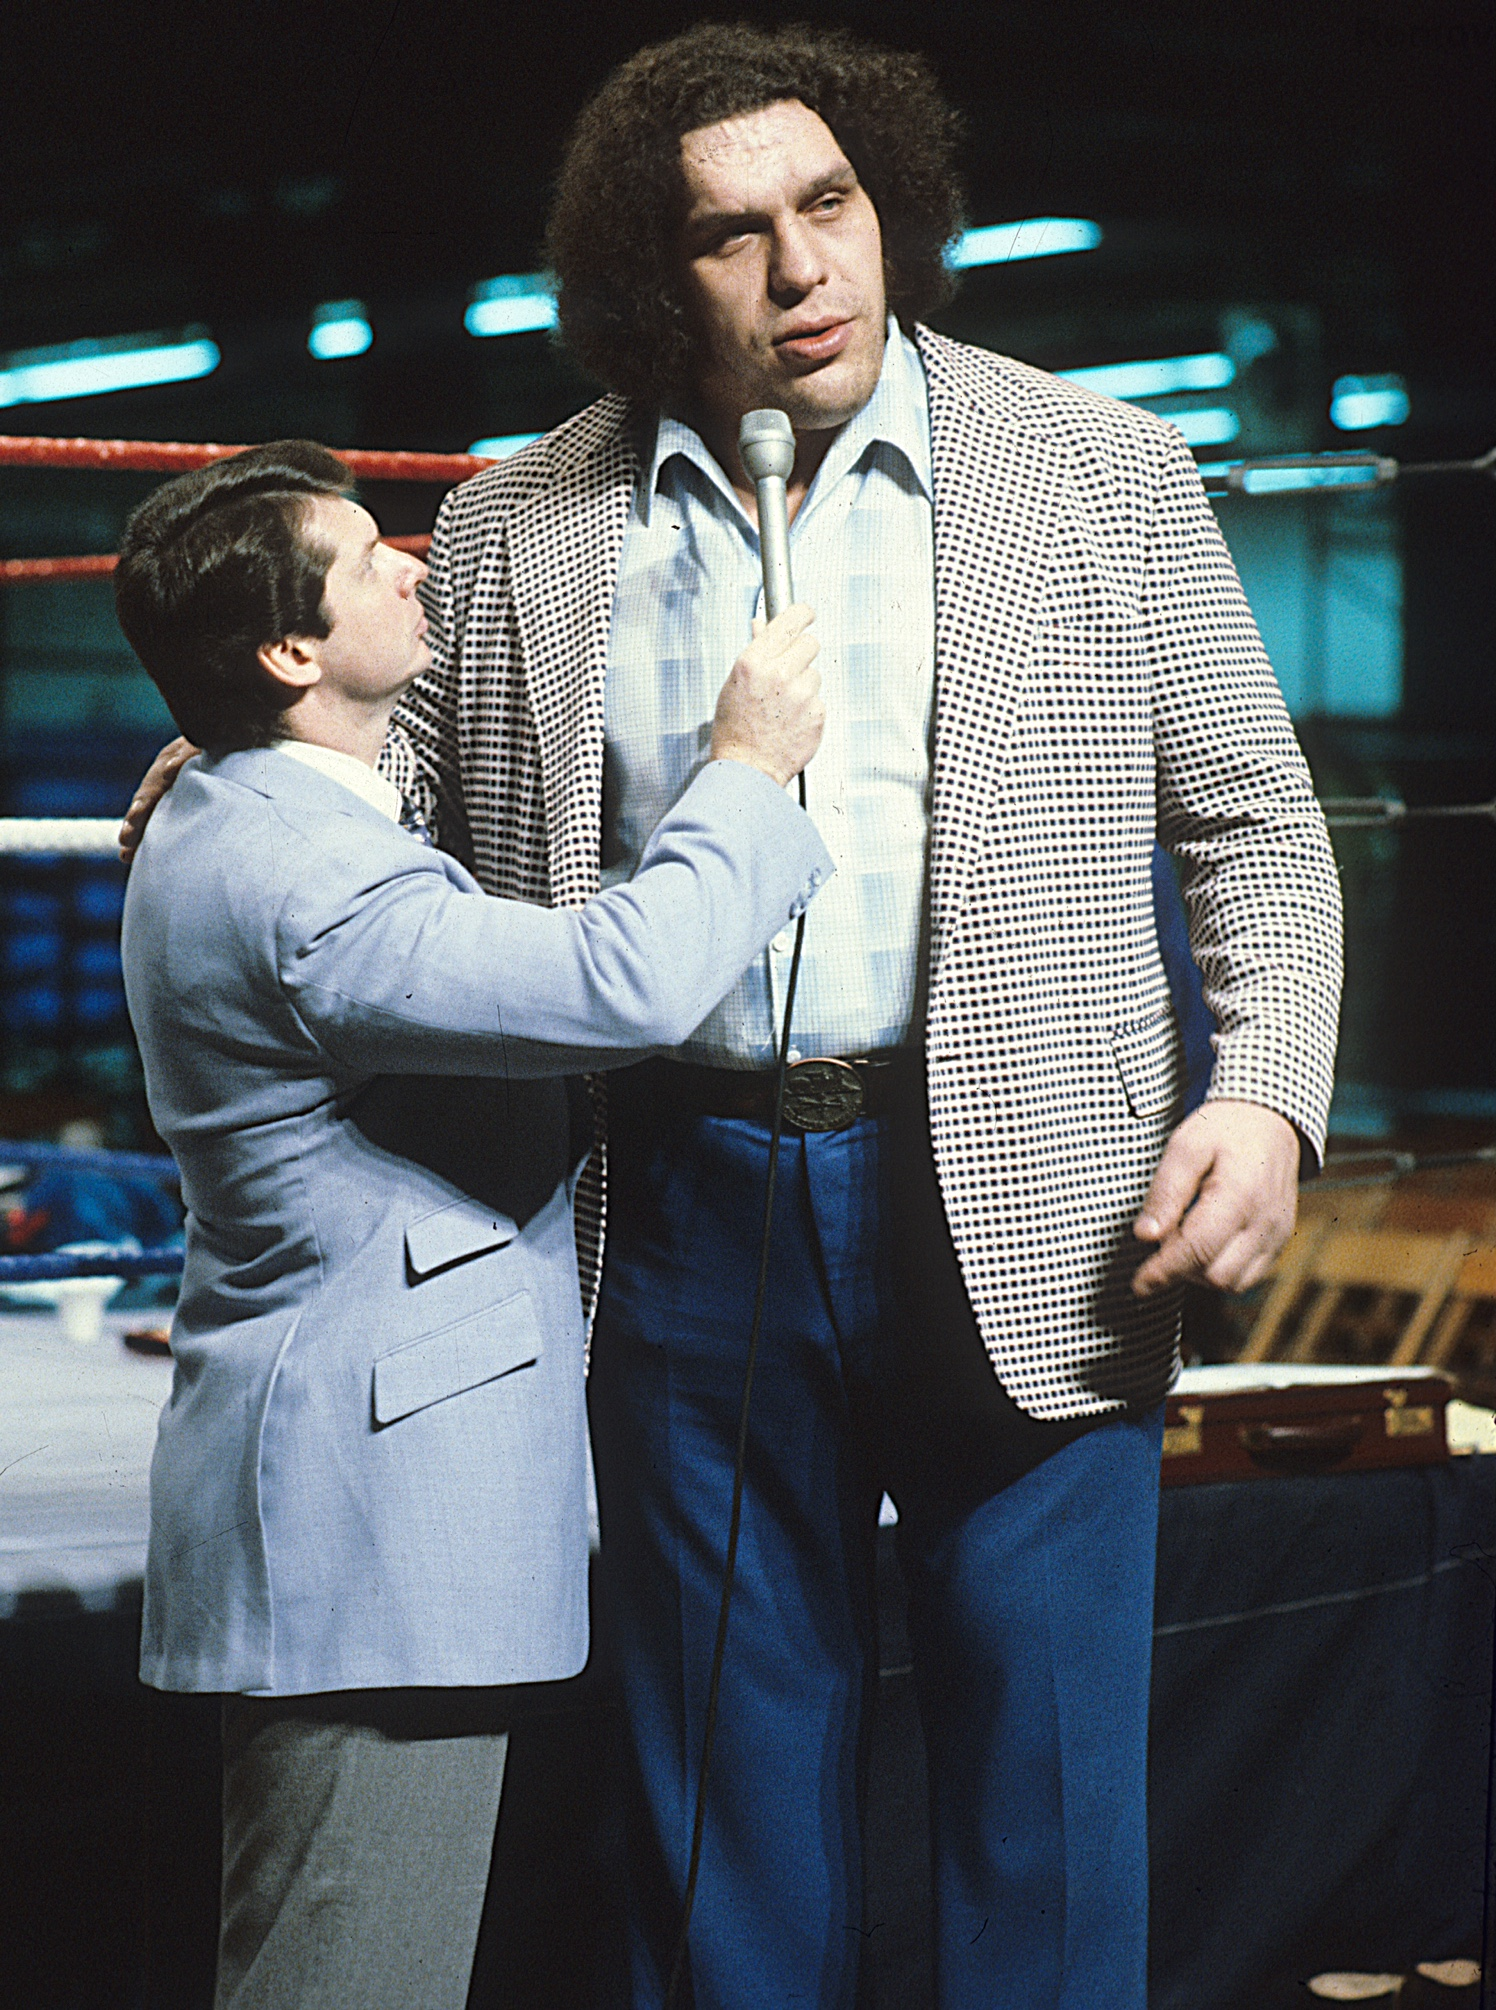 andre-with-vince-mcmahon.jpg